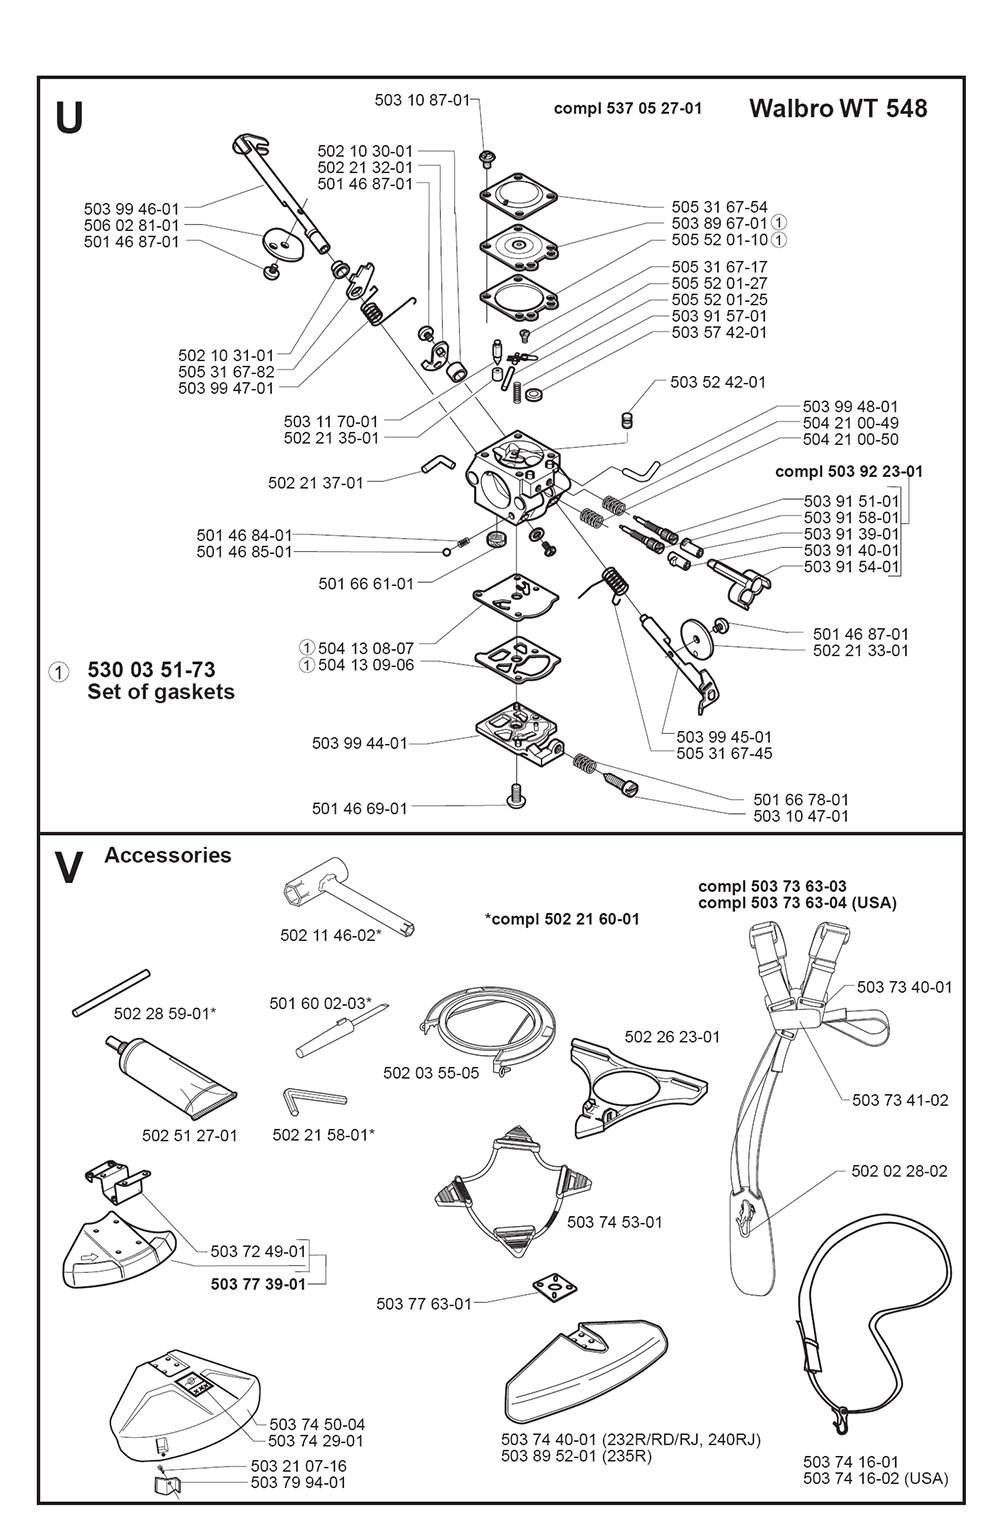 240 RJ-(I0000047)-Husqvarna-PB-4Break Down